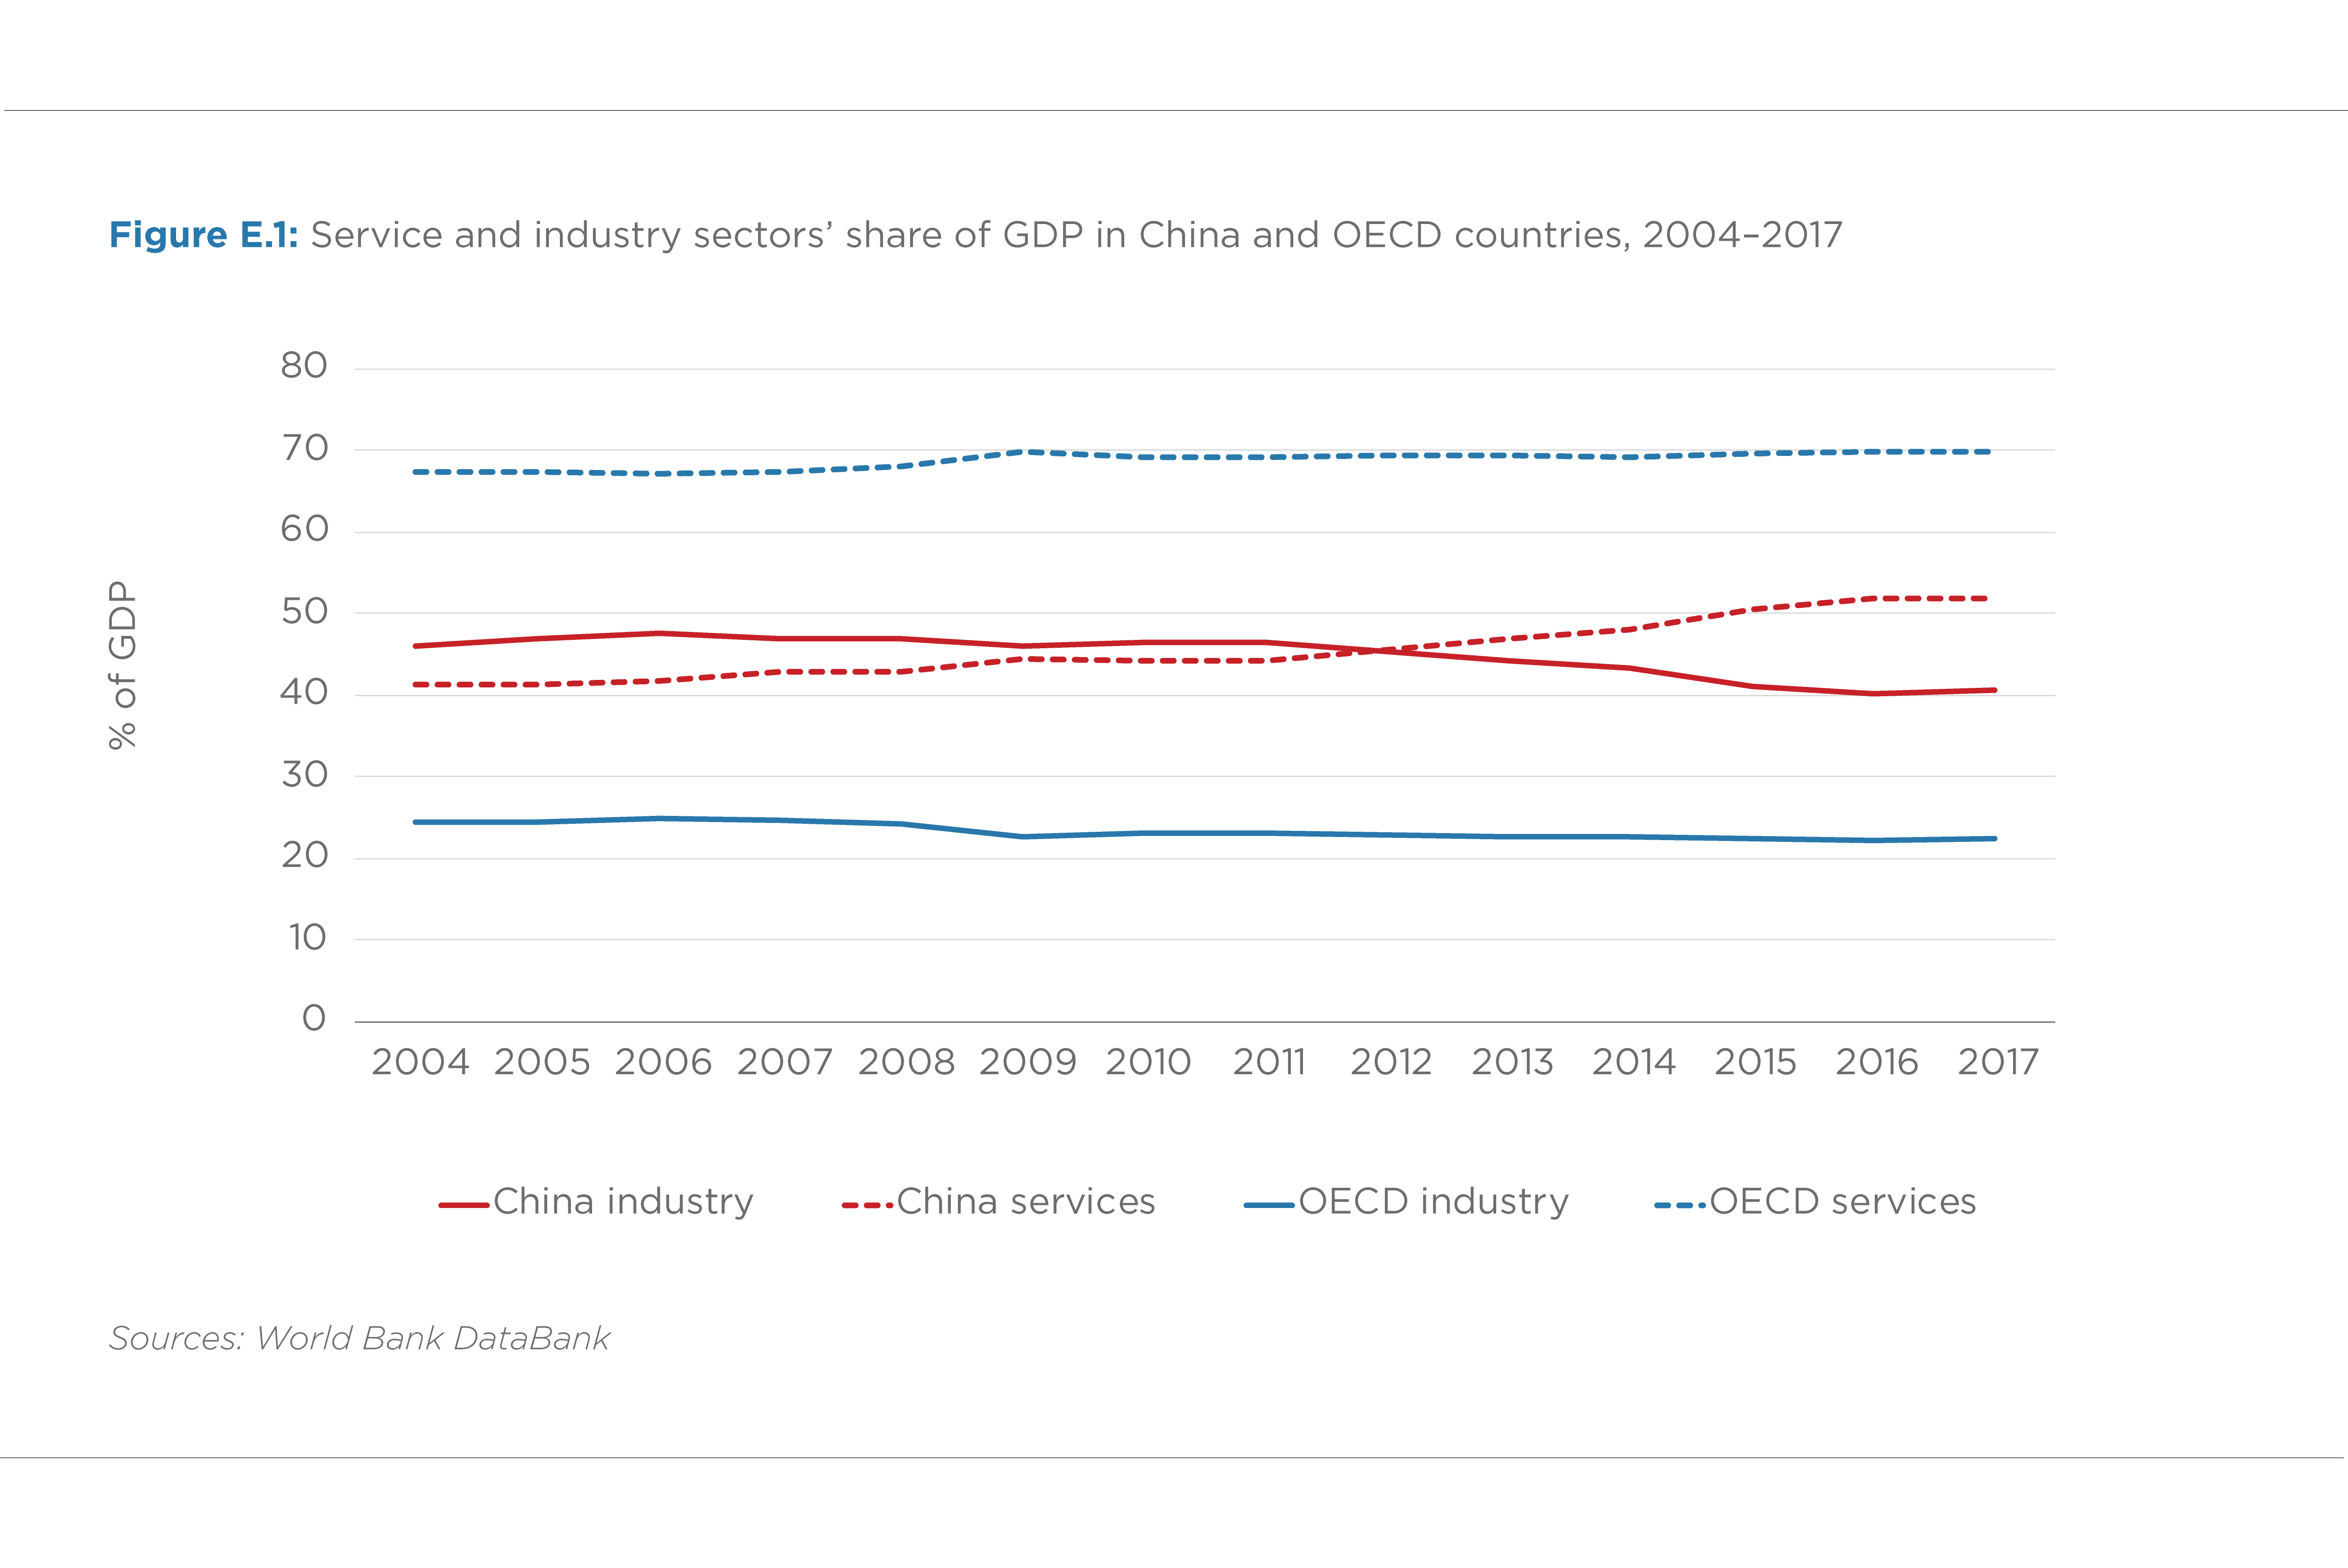 FIGURE E.1. SERVICE AND INDUSTRY SECTORS' SHARE OF GDP IN CHINA AND THE OECD COUNTRIES (2004–2017)